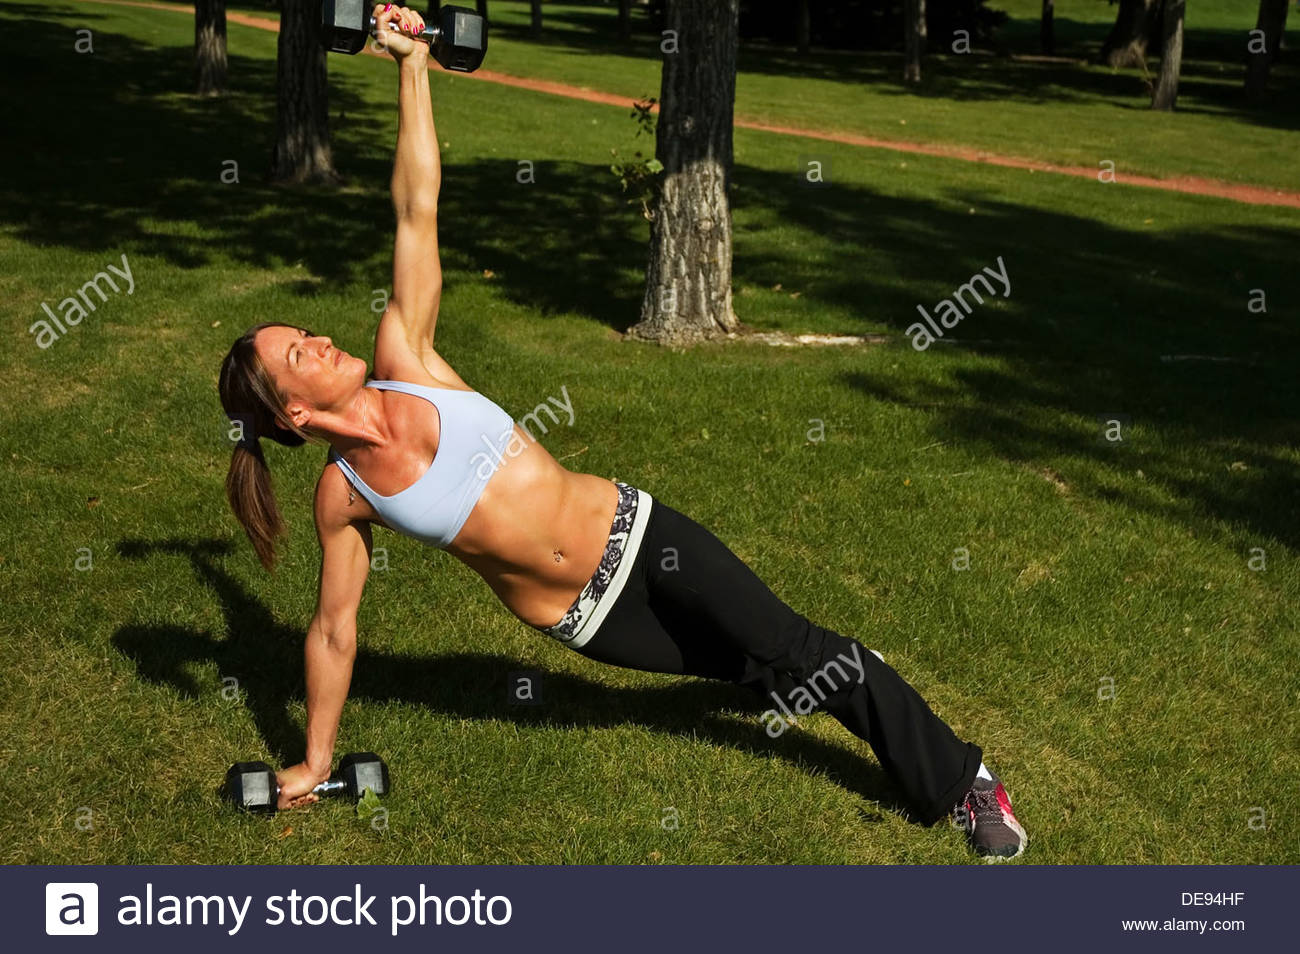 Woman doing a side plank twist with weights at a park. - Stock Image